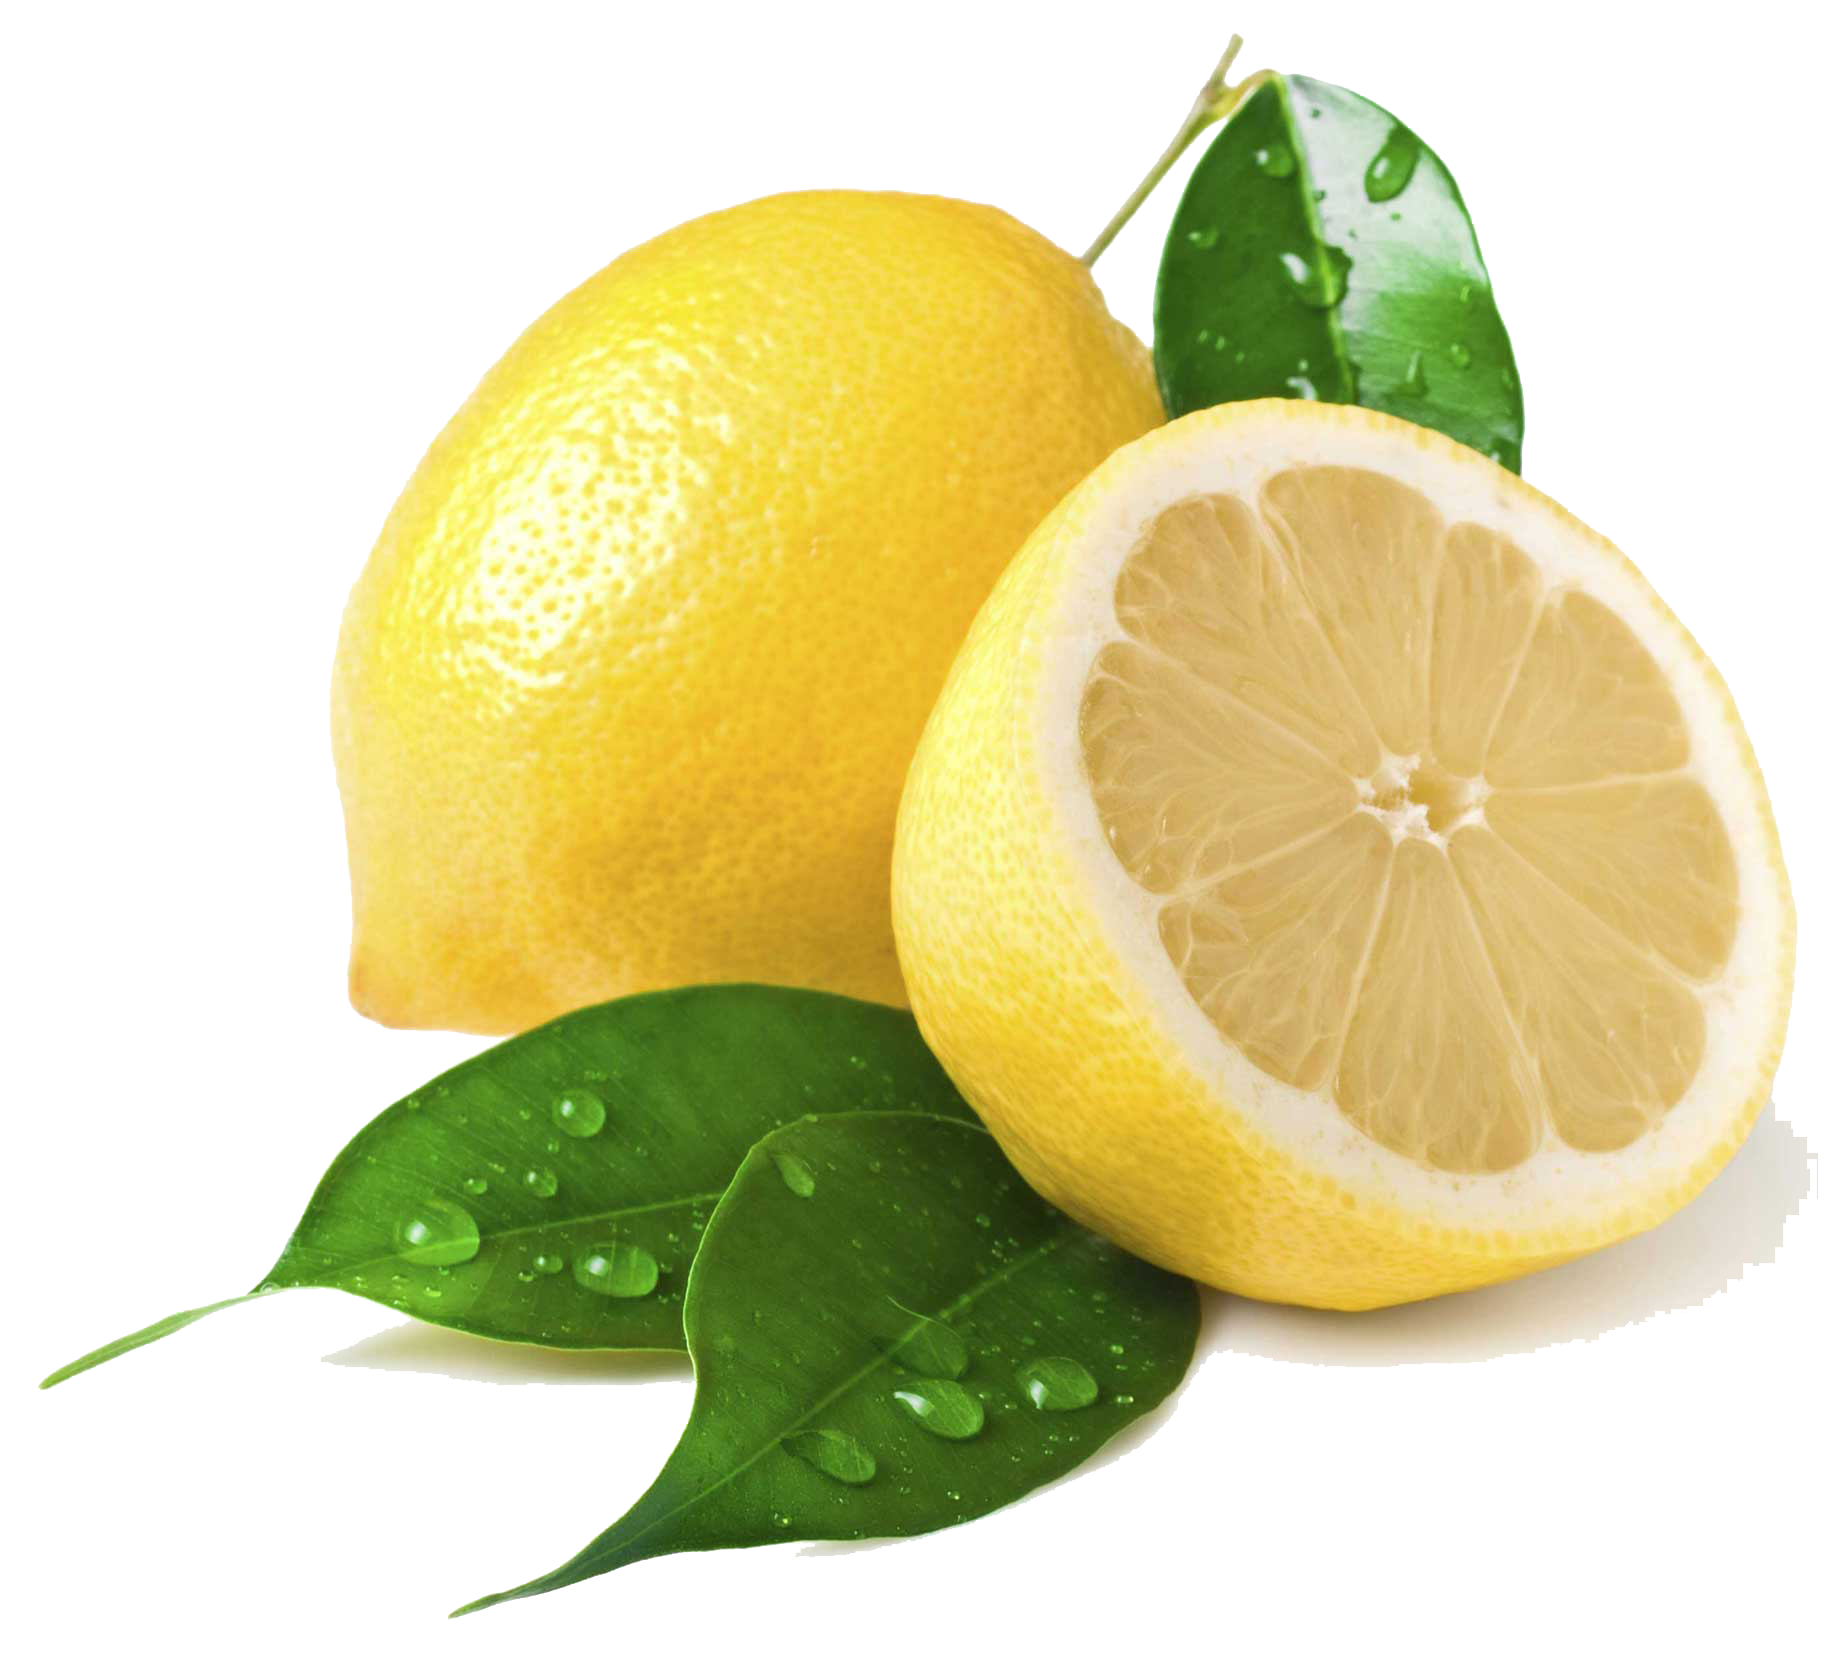 Lemon png transparent images. Lemons clipart two